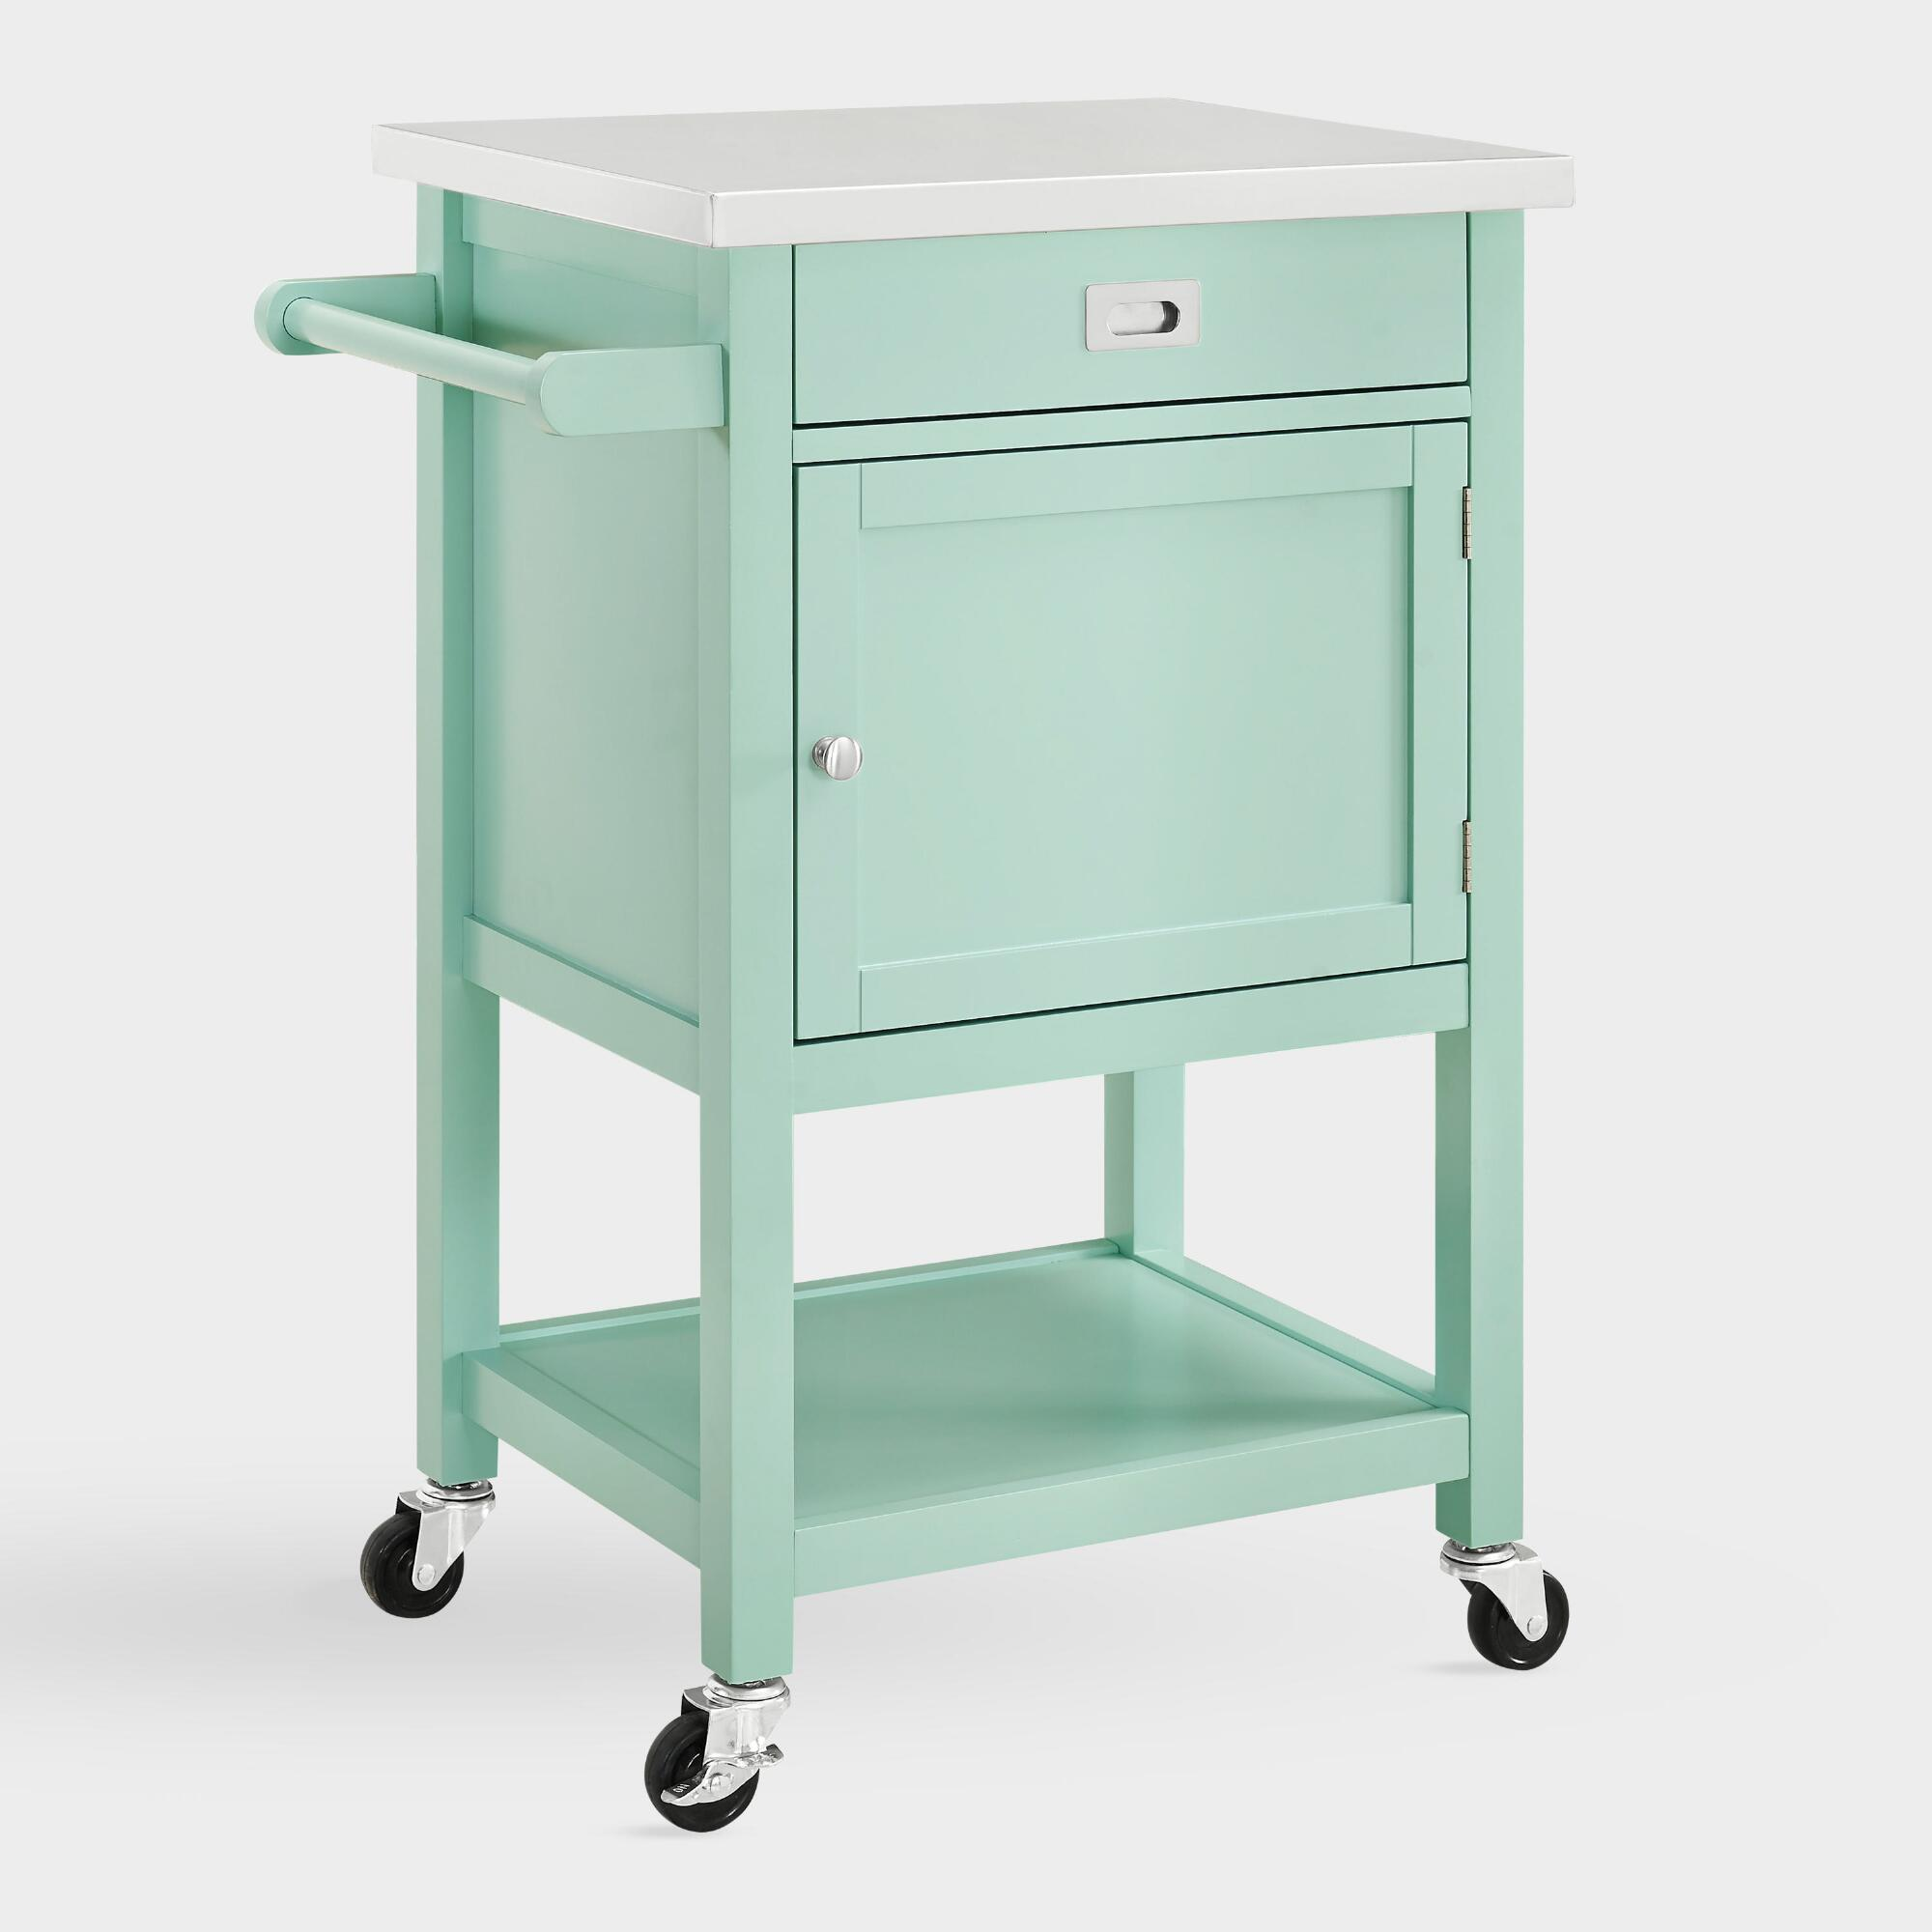 Mint Green Wood and Stainless Steel Perth Kitchen Cart by World Market